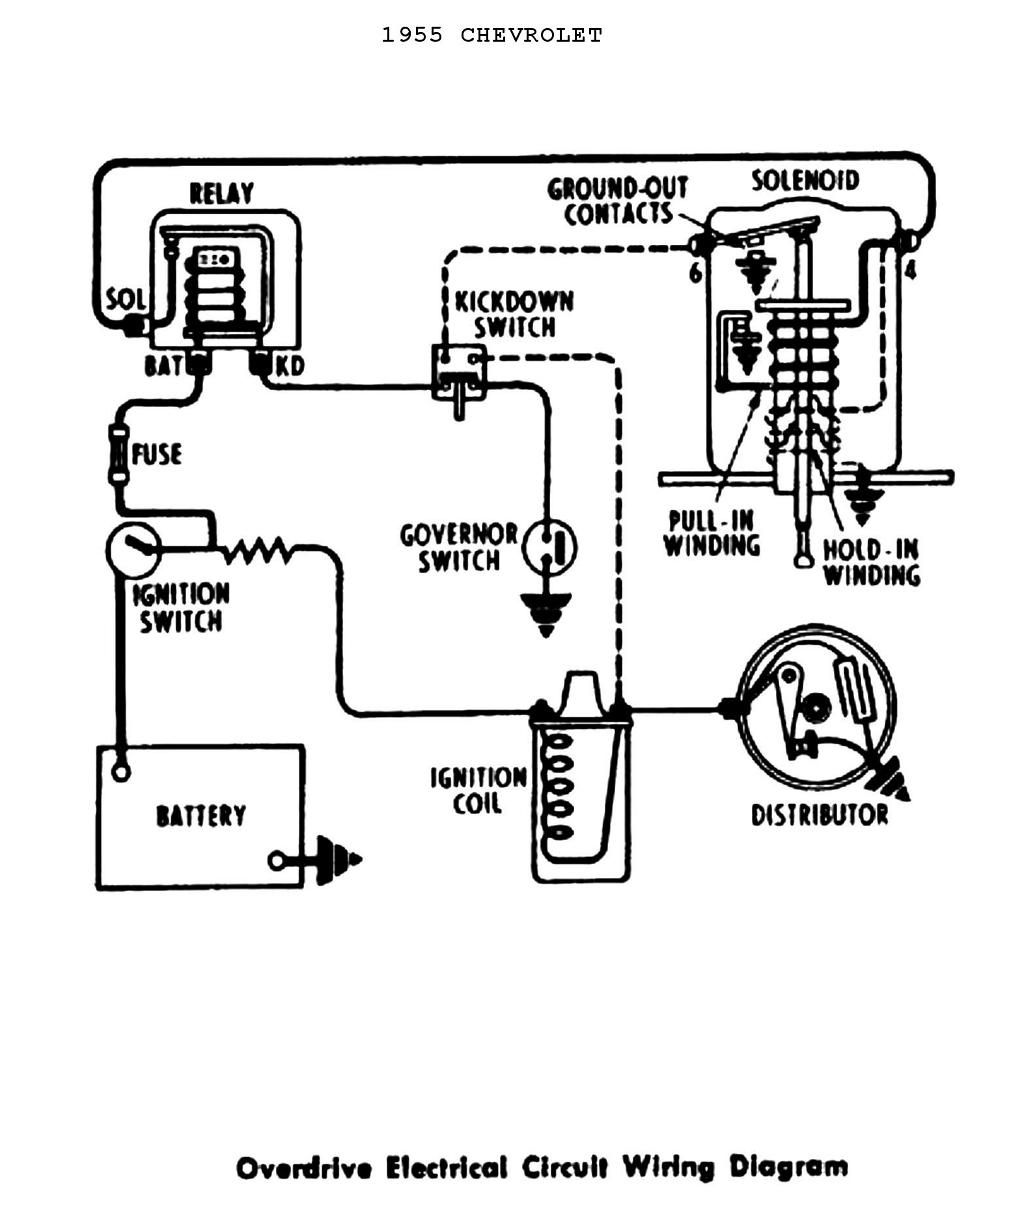 Amazing Chevy Wiring Harness Diagram Kentucky In 2021 Ignition Coil Electrical Wiring Diagram Wire - msd digital 6al ignition wiring diagram